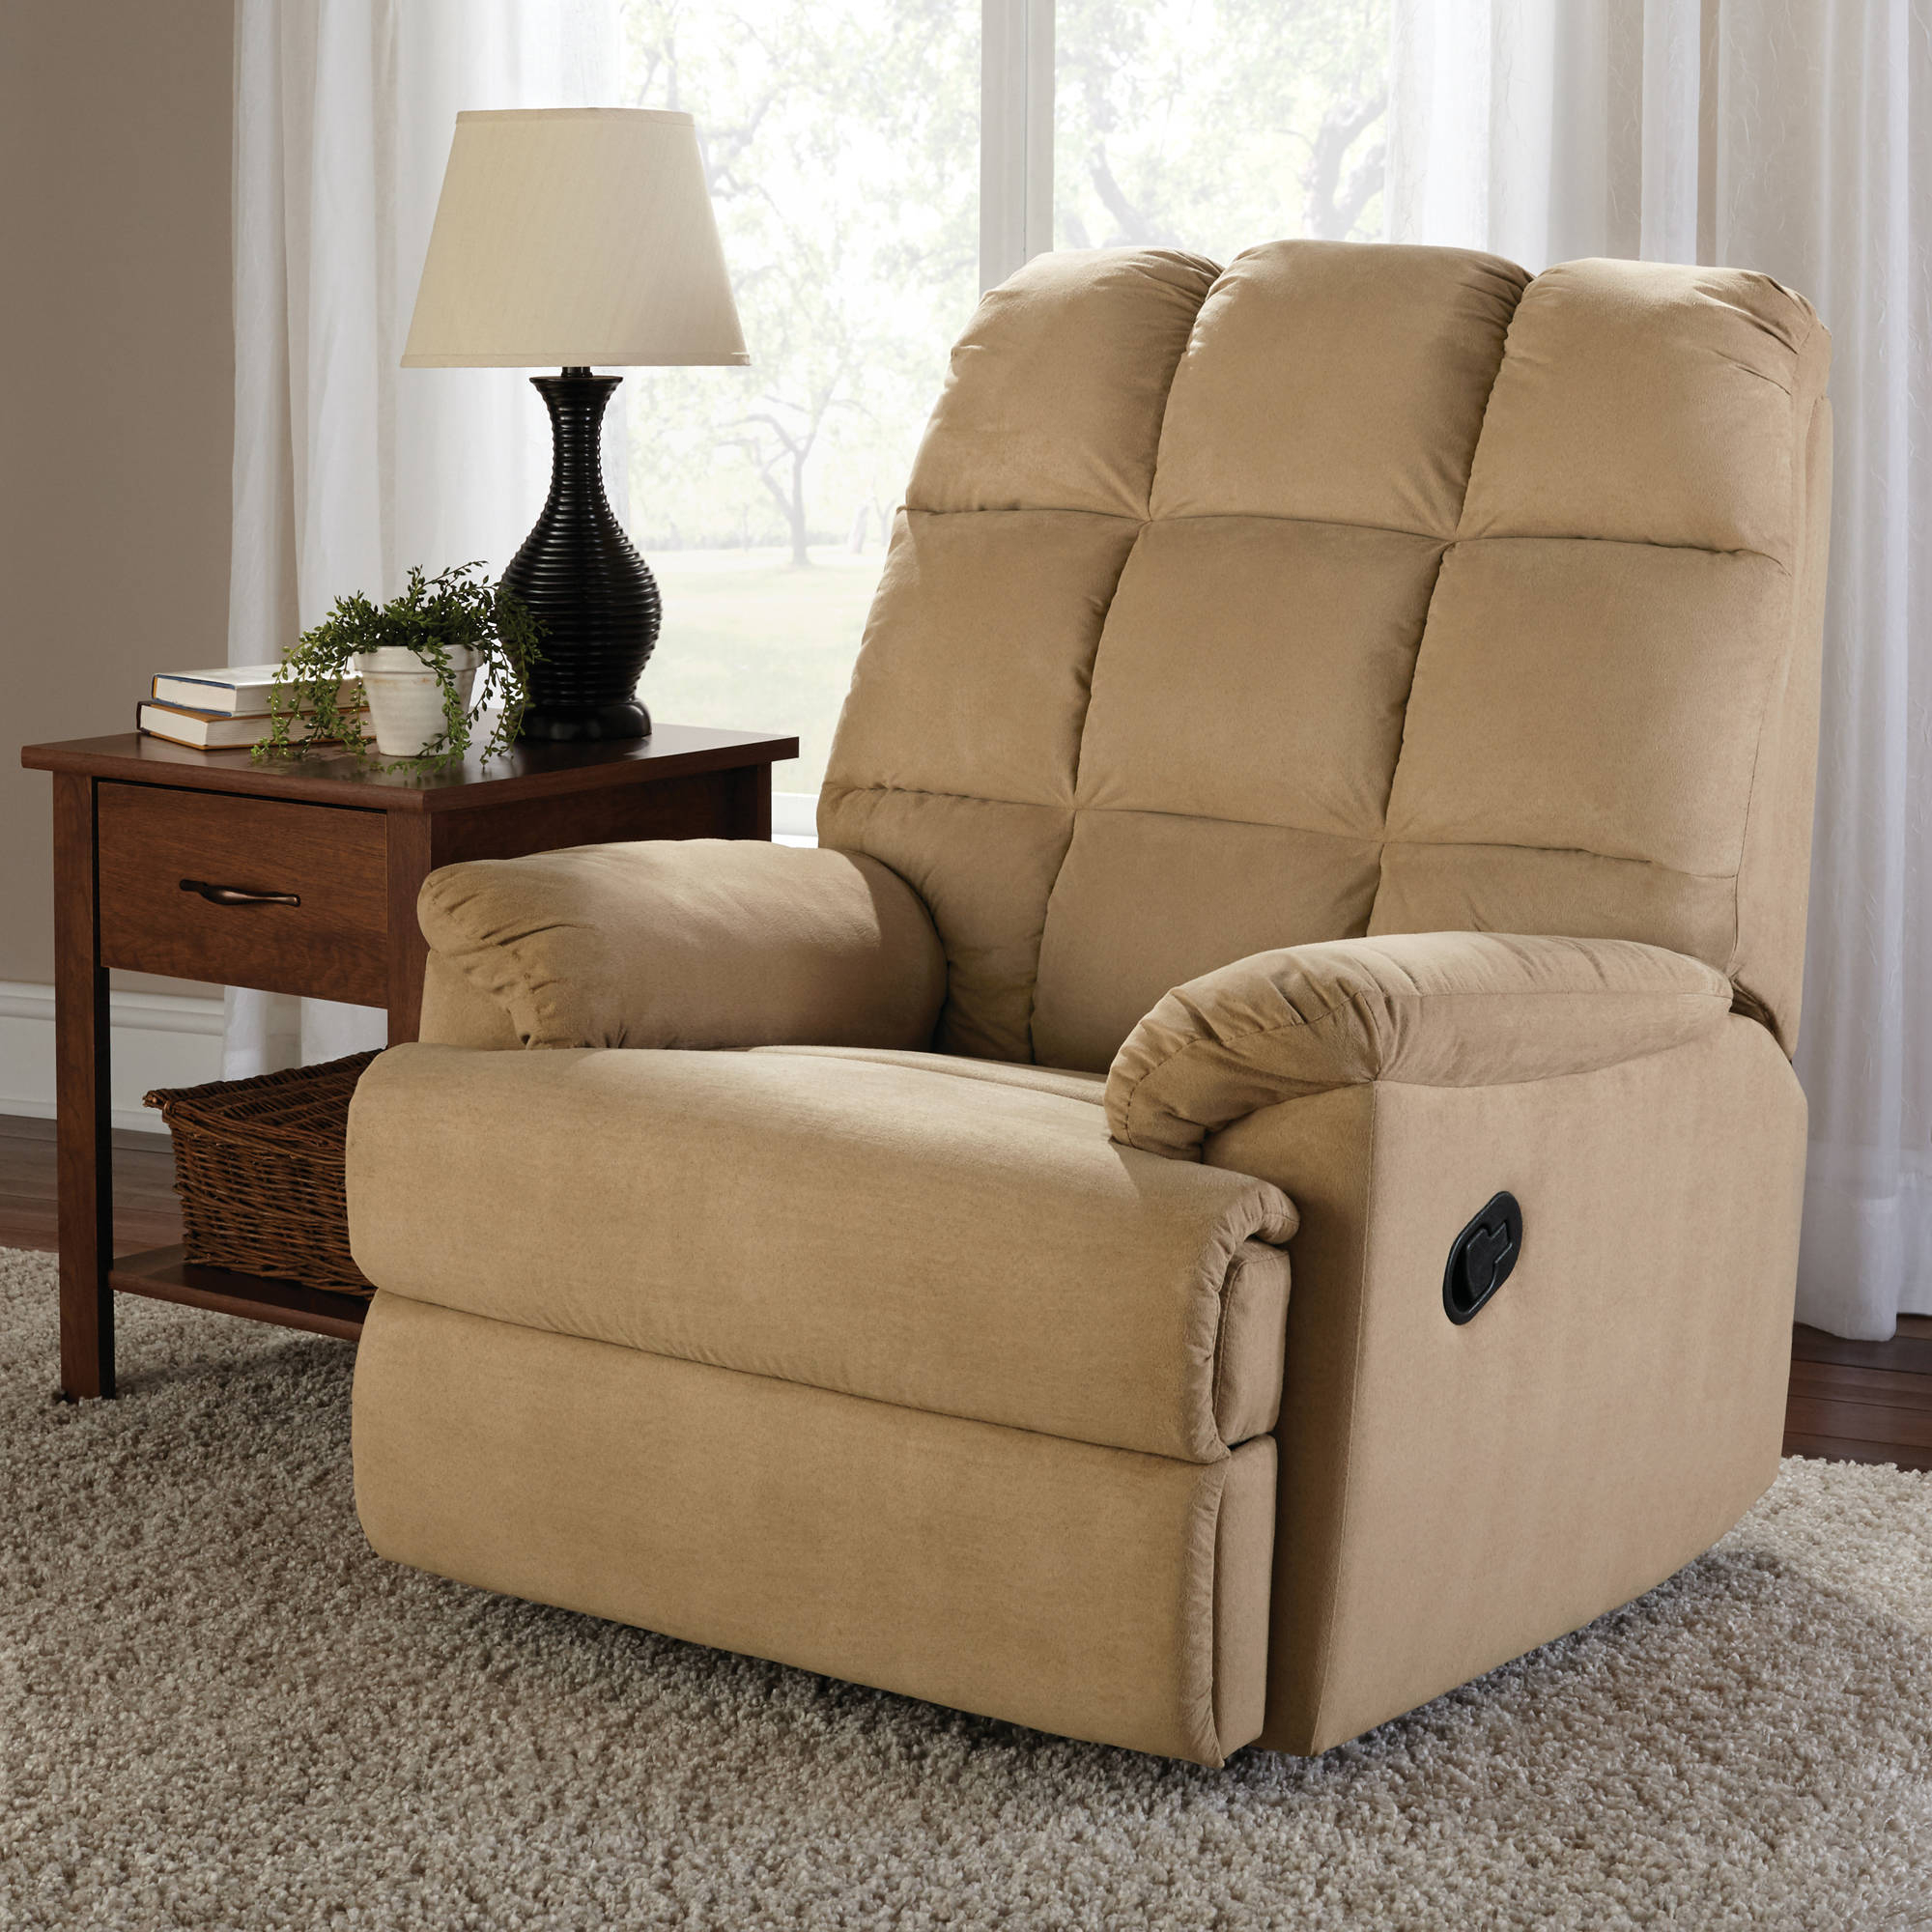 Abbey Swivel Glider Recliners Intended For Famous Furniture: Magnificent Walmart Glider Rocker For Fabulous Home (Gallery 9 of 20)